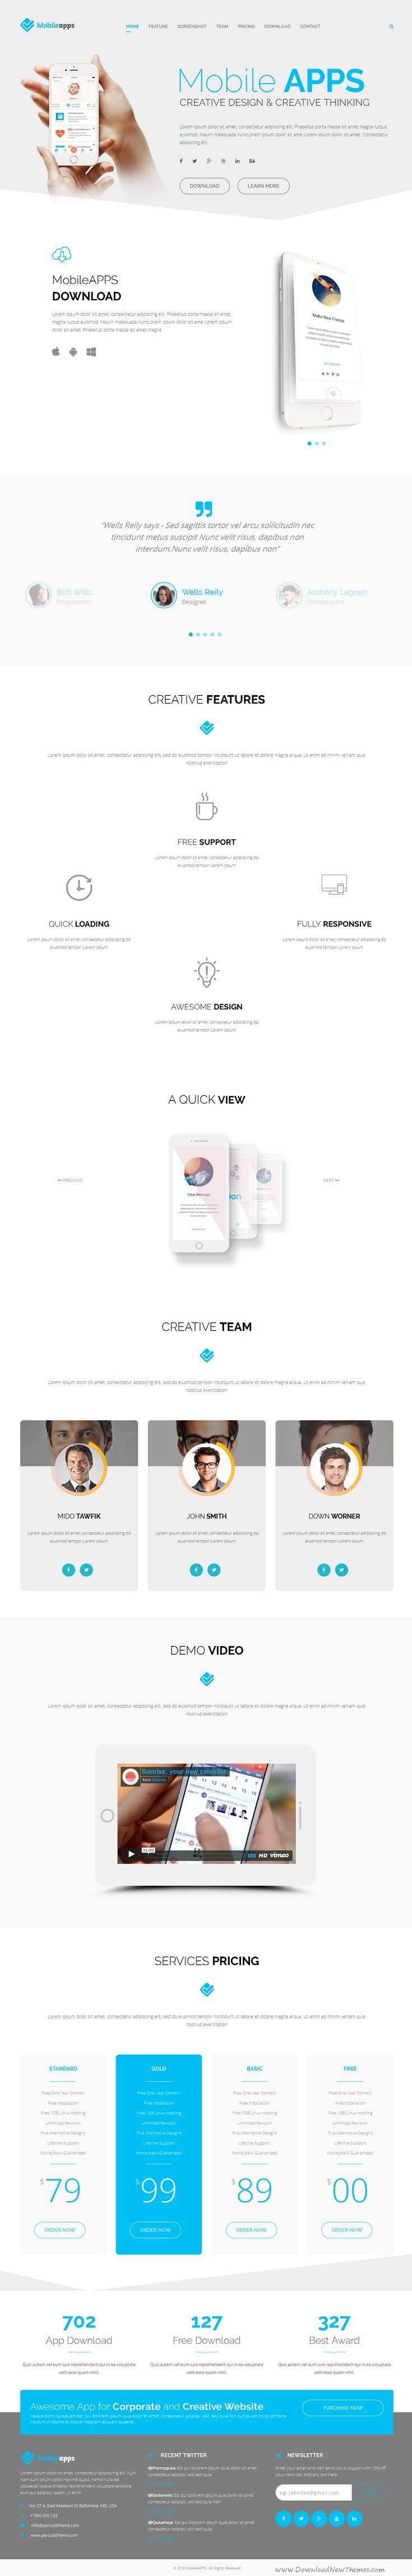 MobileApps is a Fully Responsive Landing Page Bootstrap HTML #Template for #mobile app or product #showcase website. Download Now!